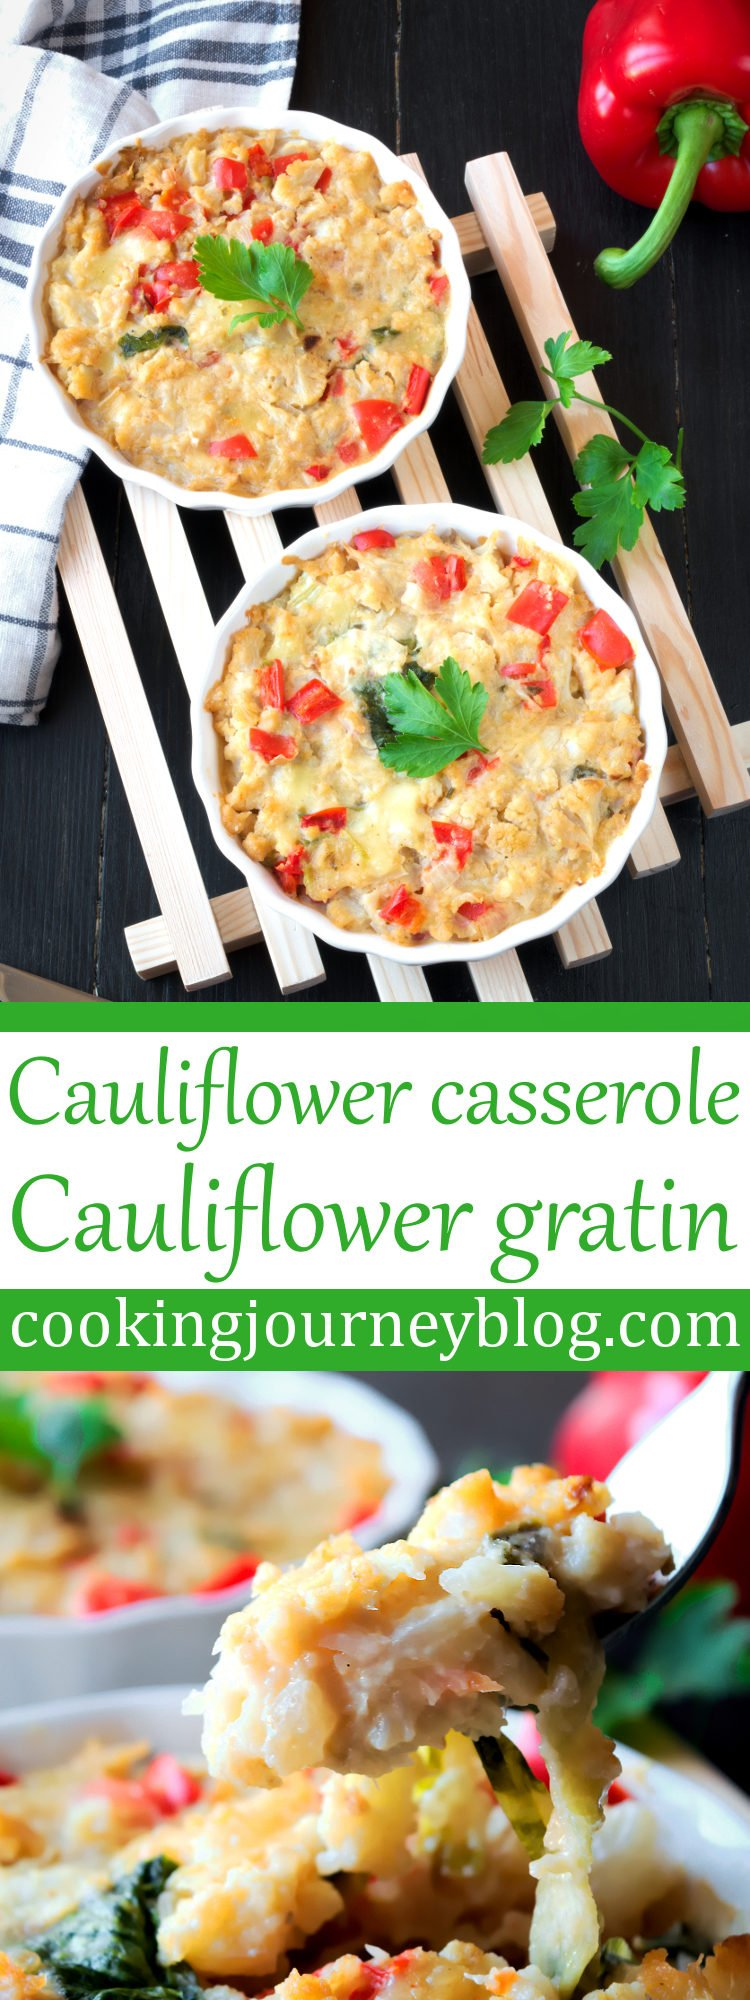 Cauliflower casserole in two individual baking dishes on a wooden rack. Cauliflower casserole or cauliflower gratin (cauliflower and cheese bake) is a great spicy dish for the dinner. It is easy and fast dinner recipe, yet full of flavor. Cauliflower and cheese are best partners, with addition of jalapeno to spice it up! There are so many cauliflower casserole recipes, this is a best side dish or a snack during cold winter months to enjoy.